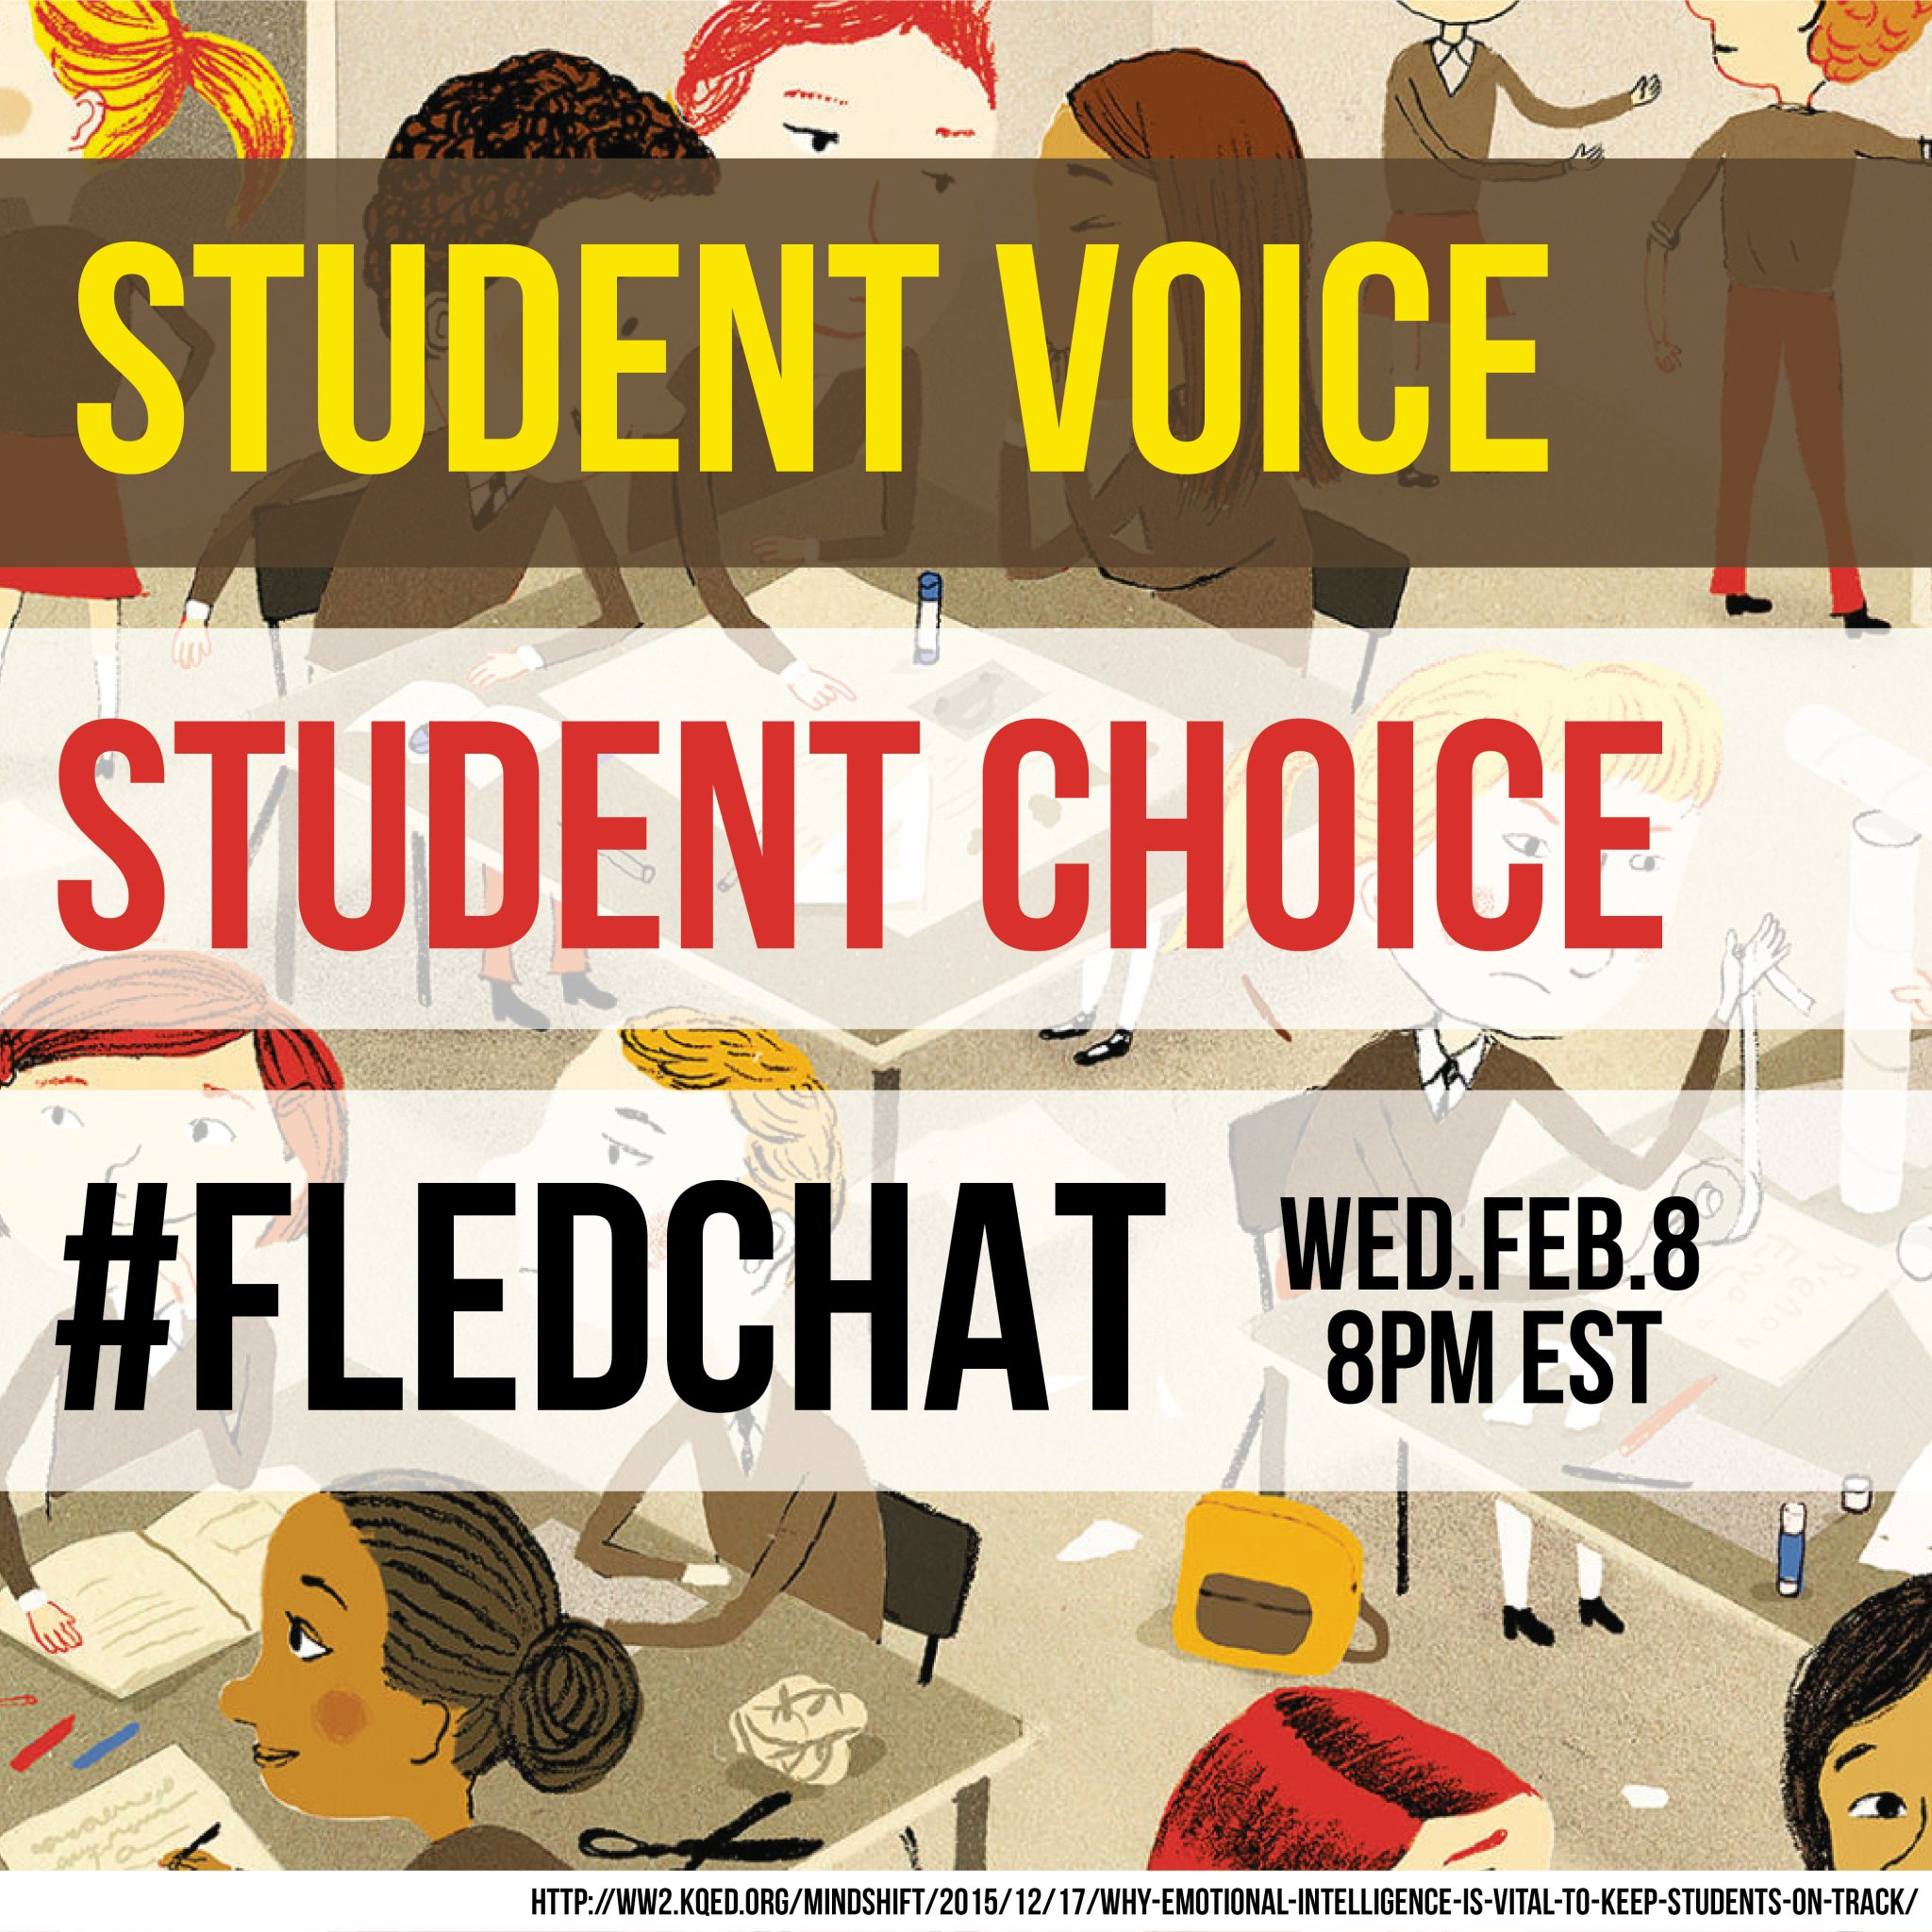 Student Voice and Student Choice - Tonight on #FLEdChat - 8PM EST - Come for the snacks... stay for the conversation! https://t.co/NqKHp0ILmG